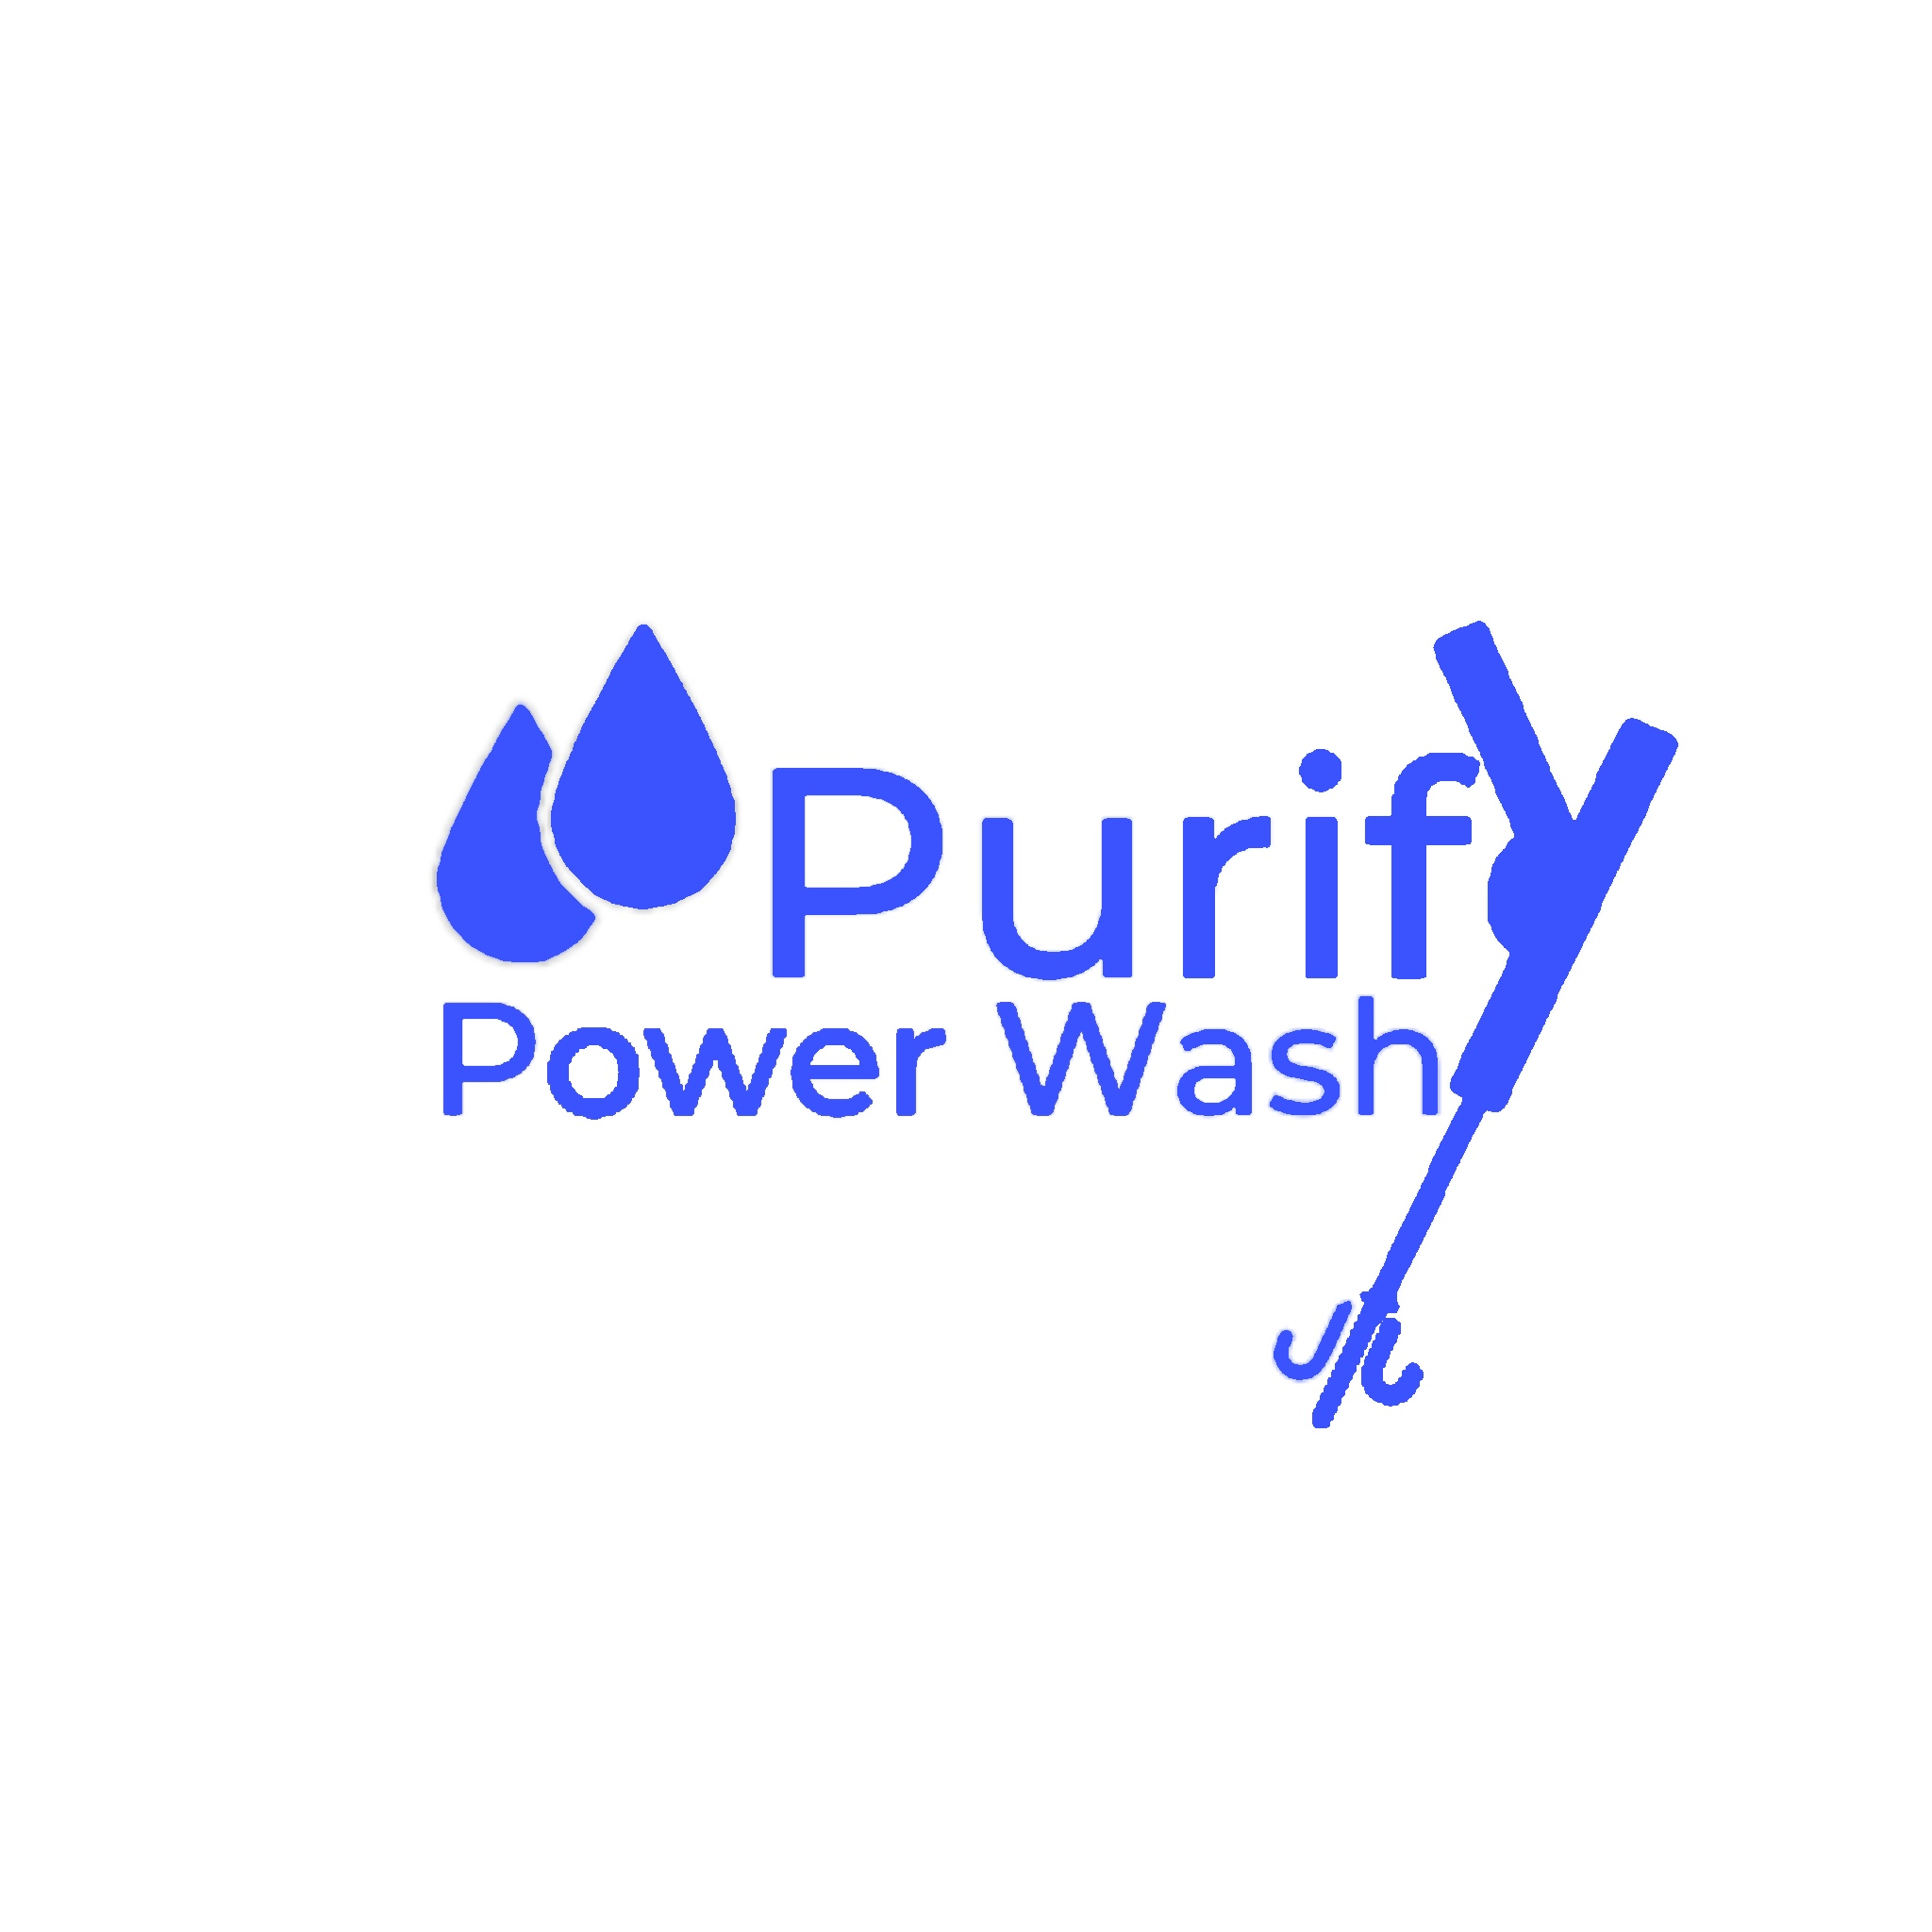 Purify Power Wash: Home Exterior Cleaning Services